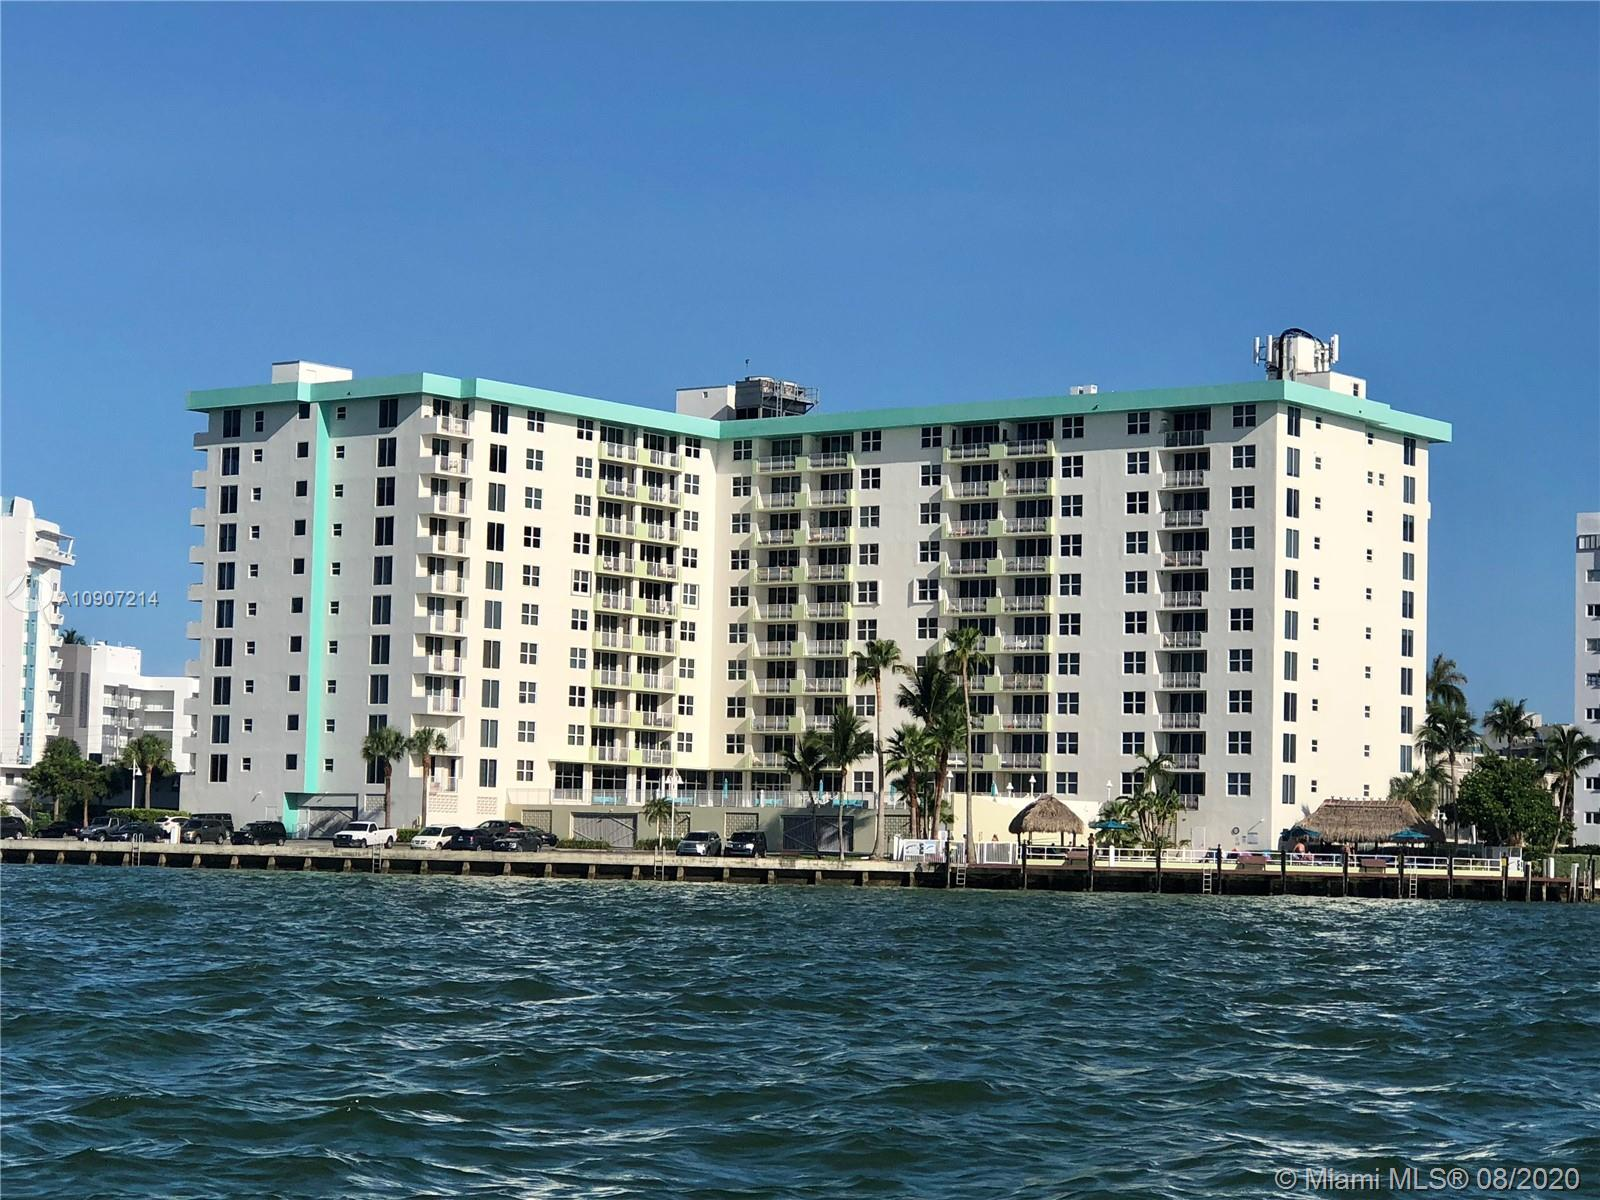 Totally remodeled all new. Gorgeous unit on the Bay in the prestigious Bay Harbor Island. 1 bed/ 1 bath. Washer and dryer inside the unit. Full amenities, security,pool, gym. Beautiful view.